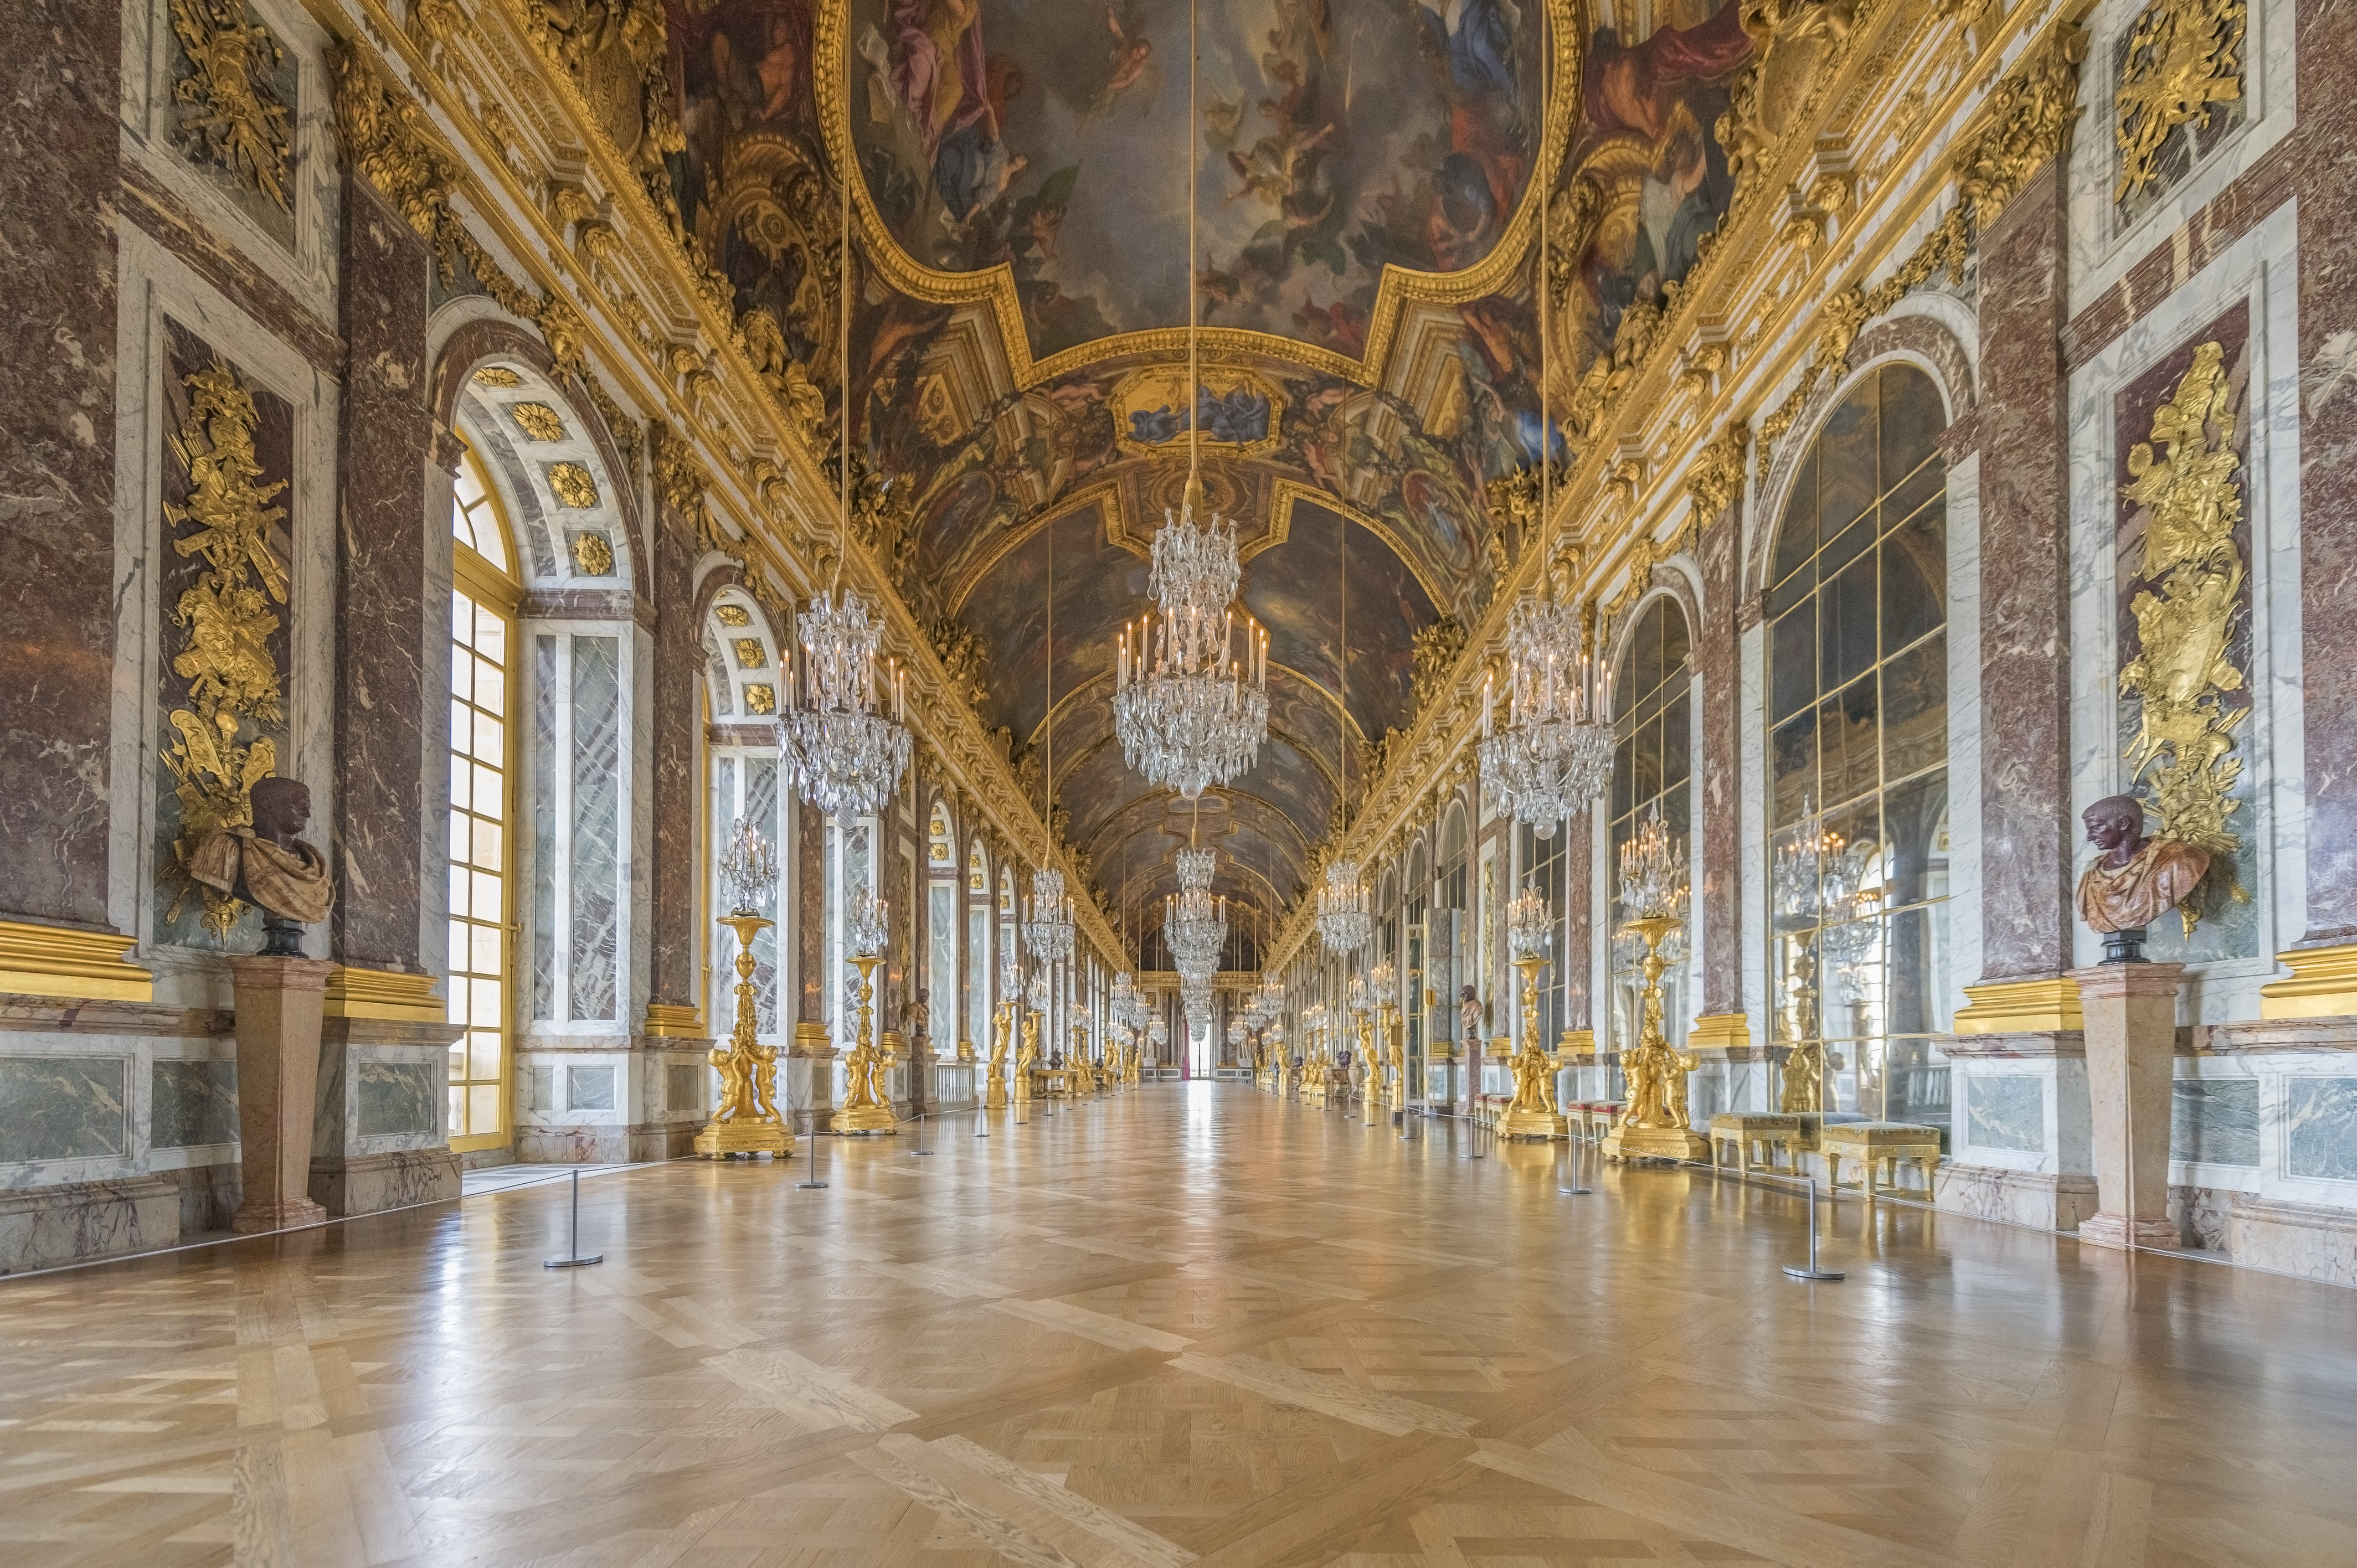 the hall of mirrors The hall of mirrors the young man stepped into the hall of mirrors where he discovered a reflection of himself even the greatest stars discover themselves in the looking glass even the greatest stars discover themselves in the looking glass sometimes, he saw his real face.